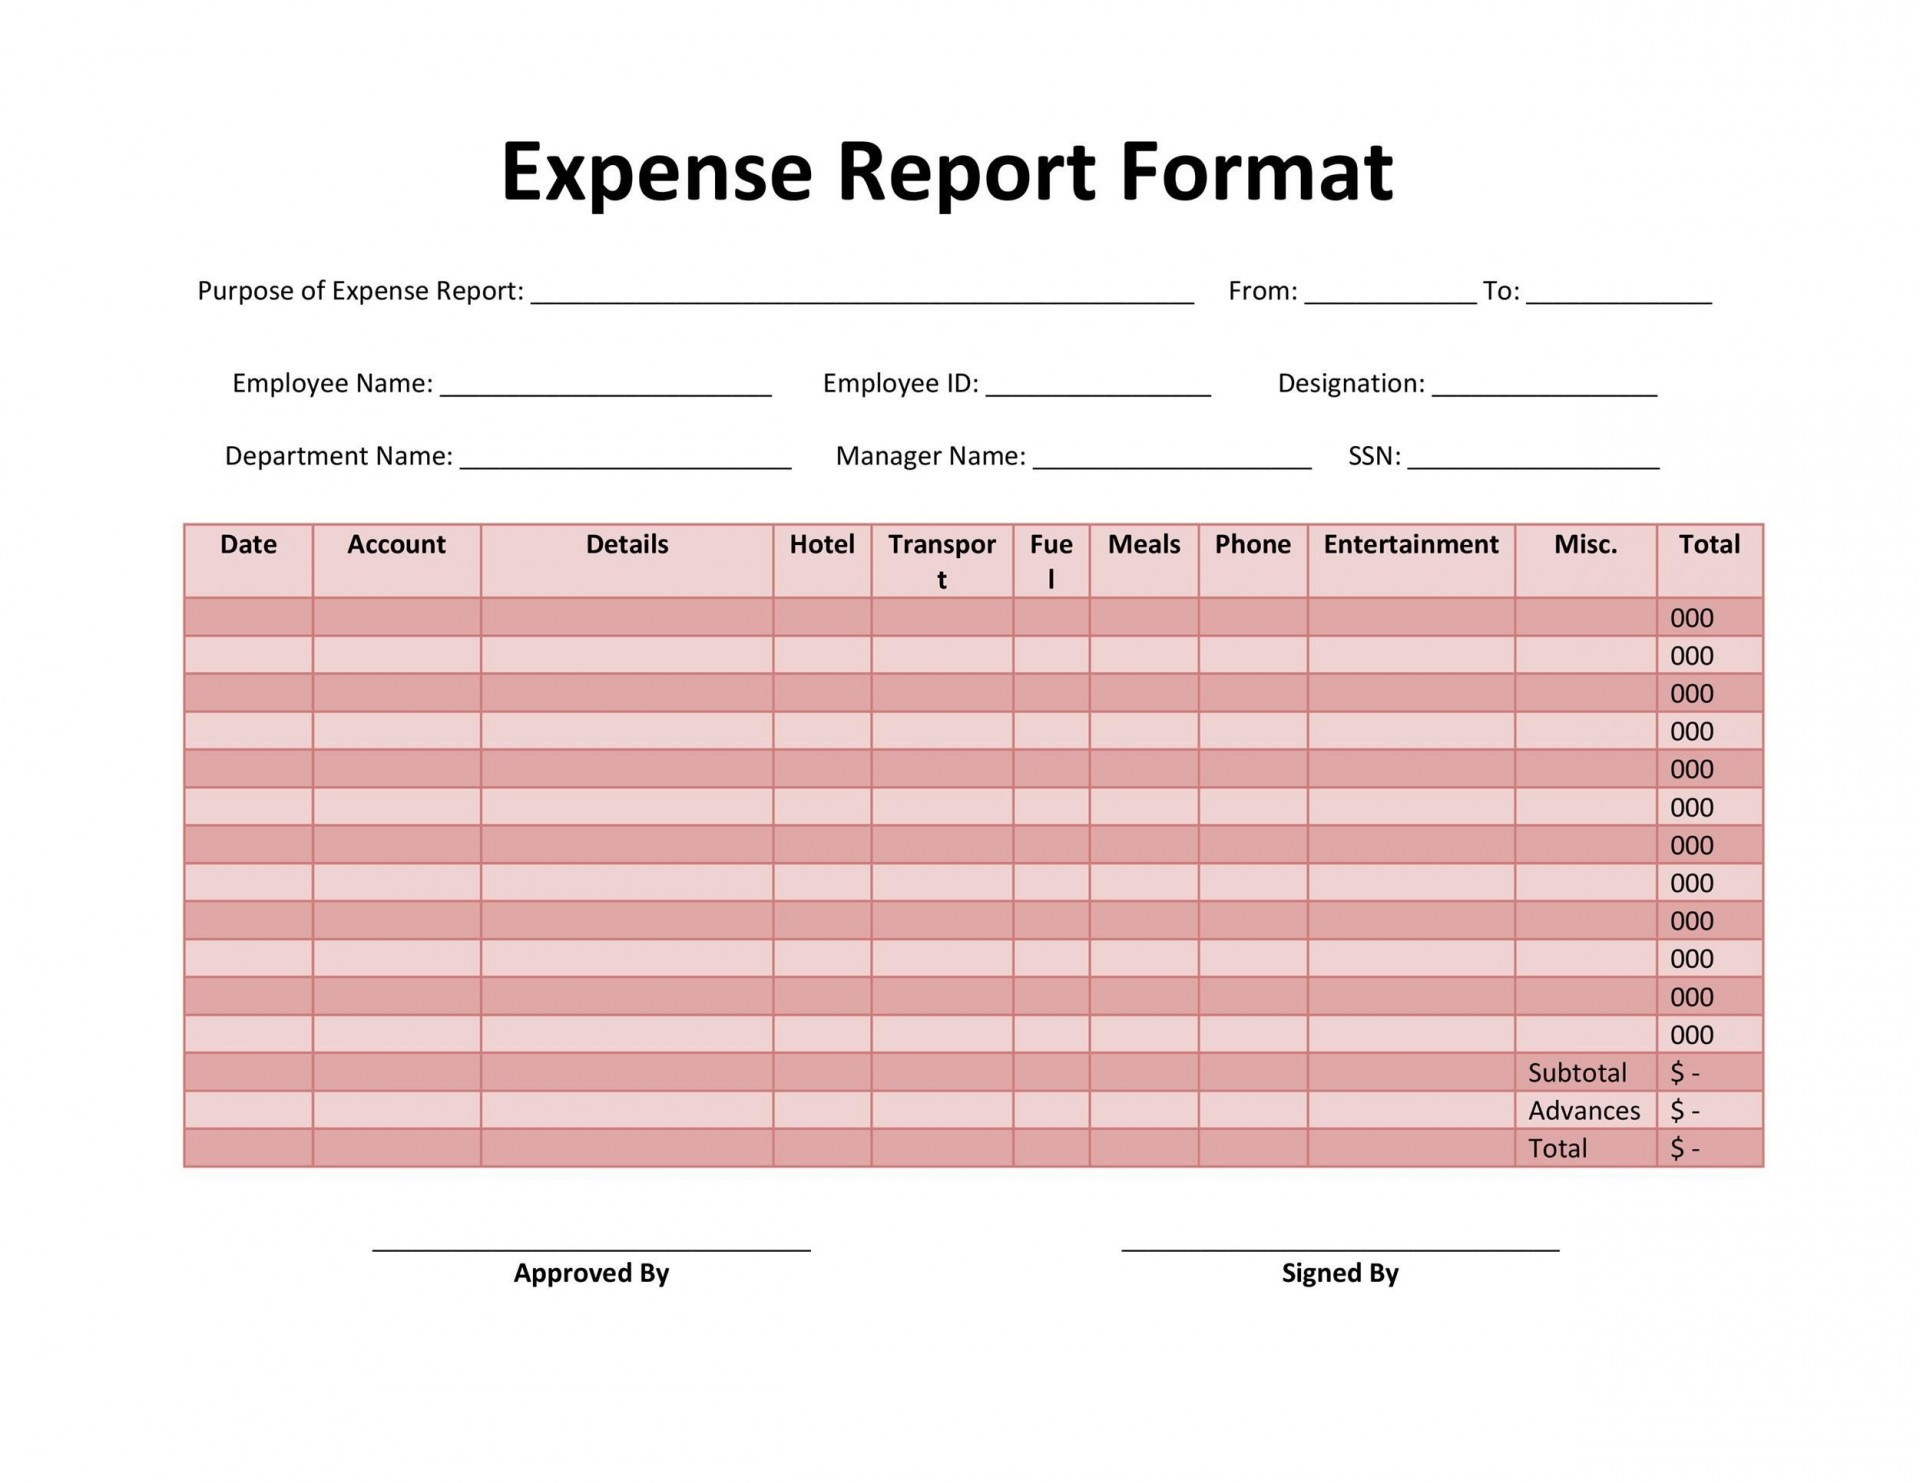 005 Impressive Simple Expense Report Template Photo  Example Free Form1920